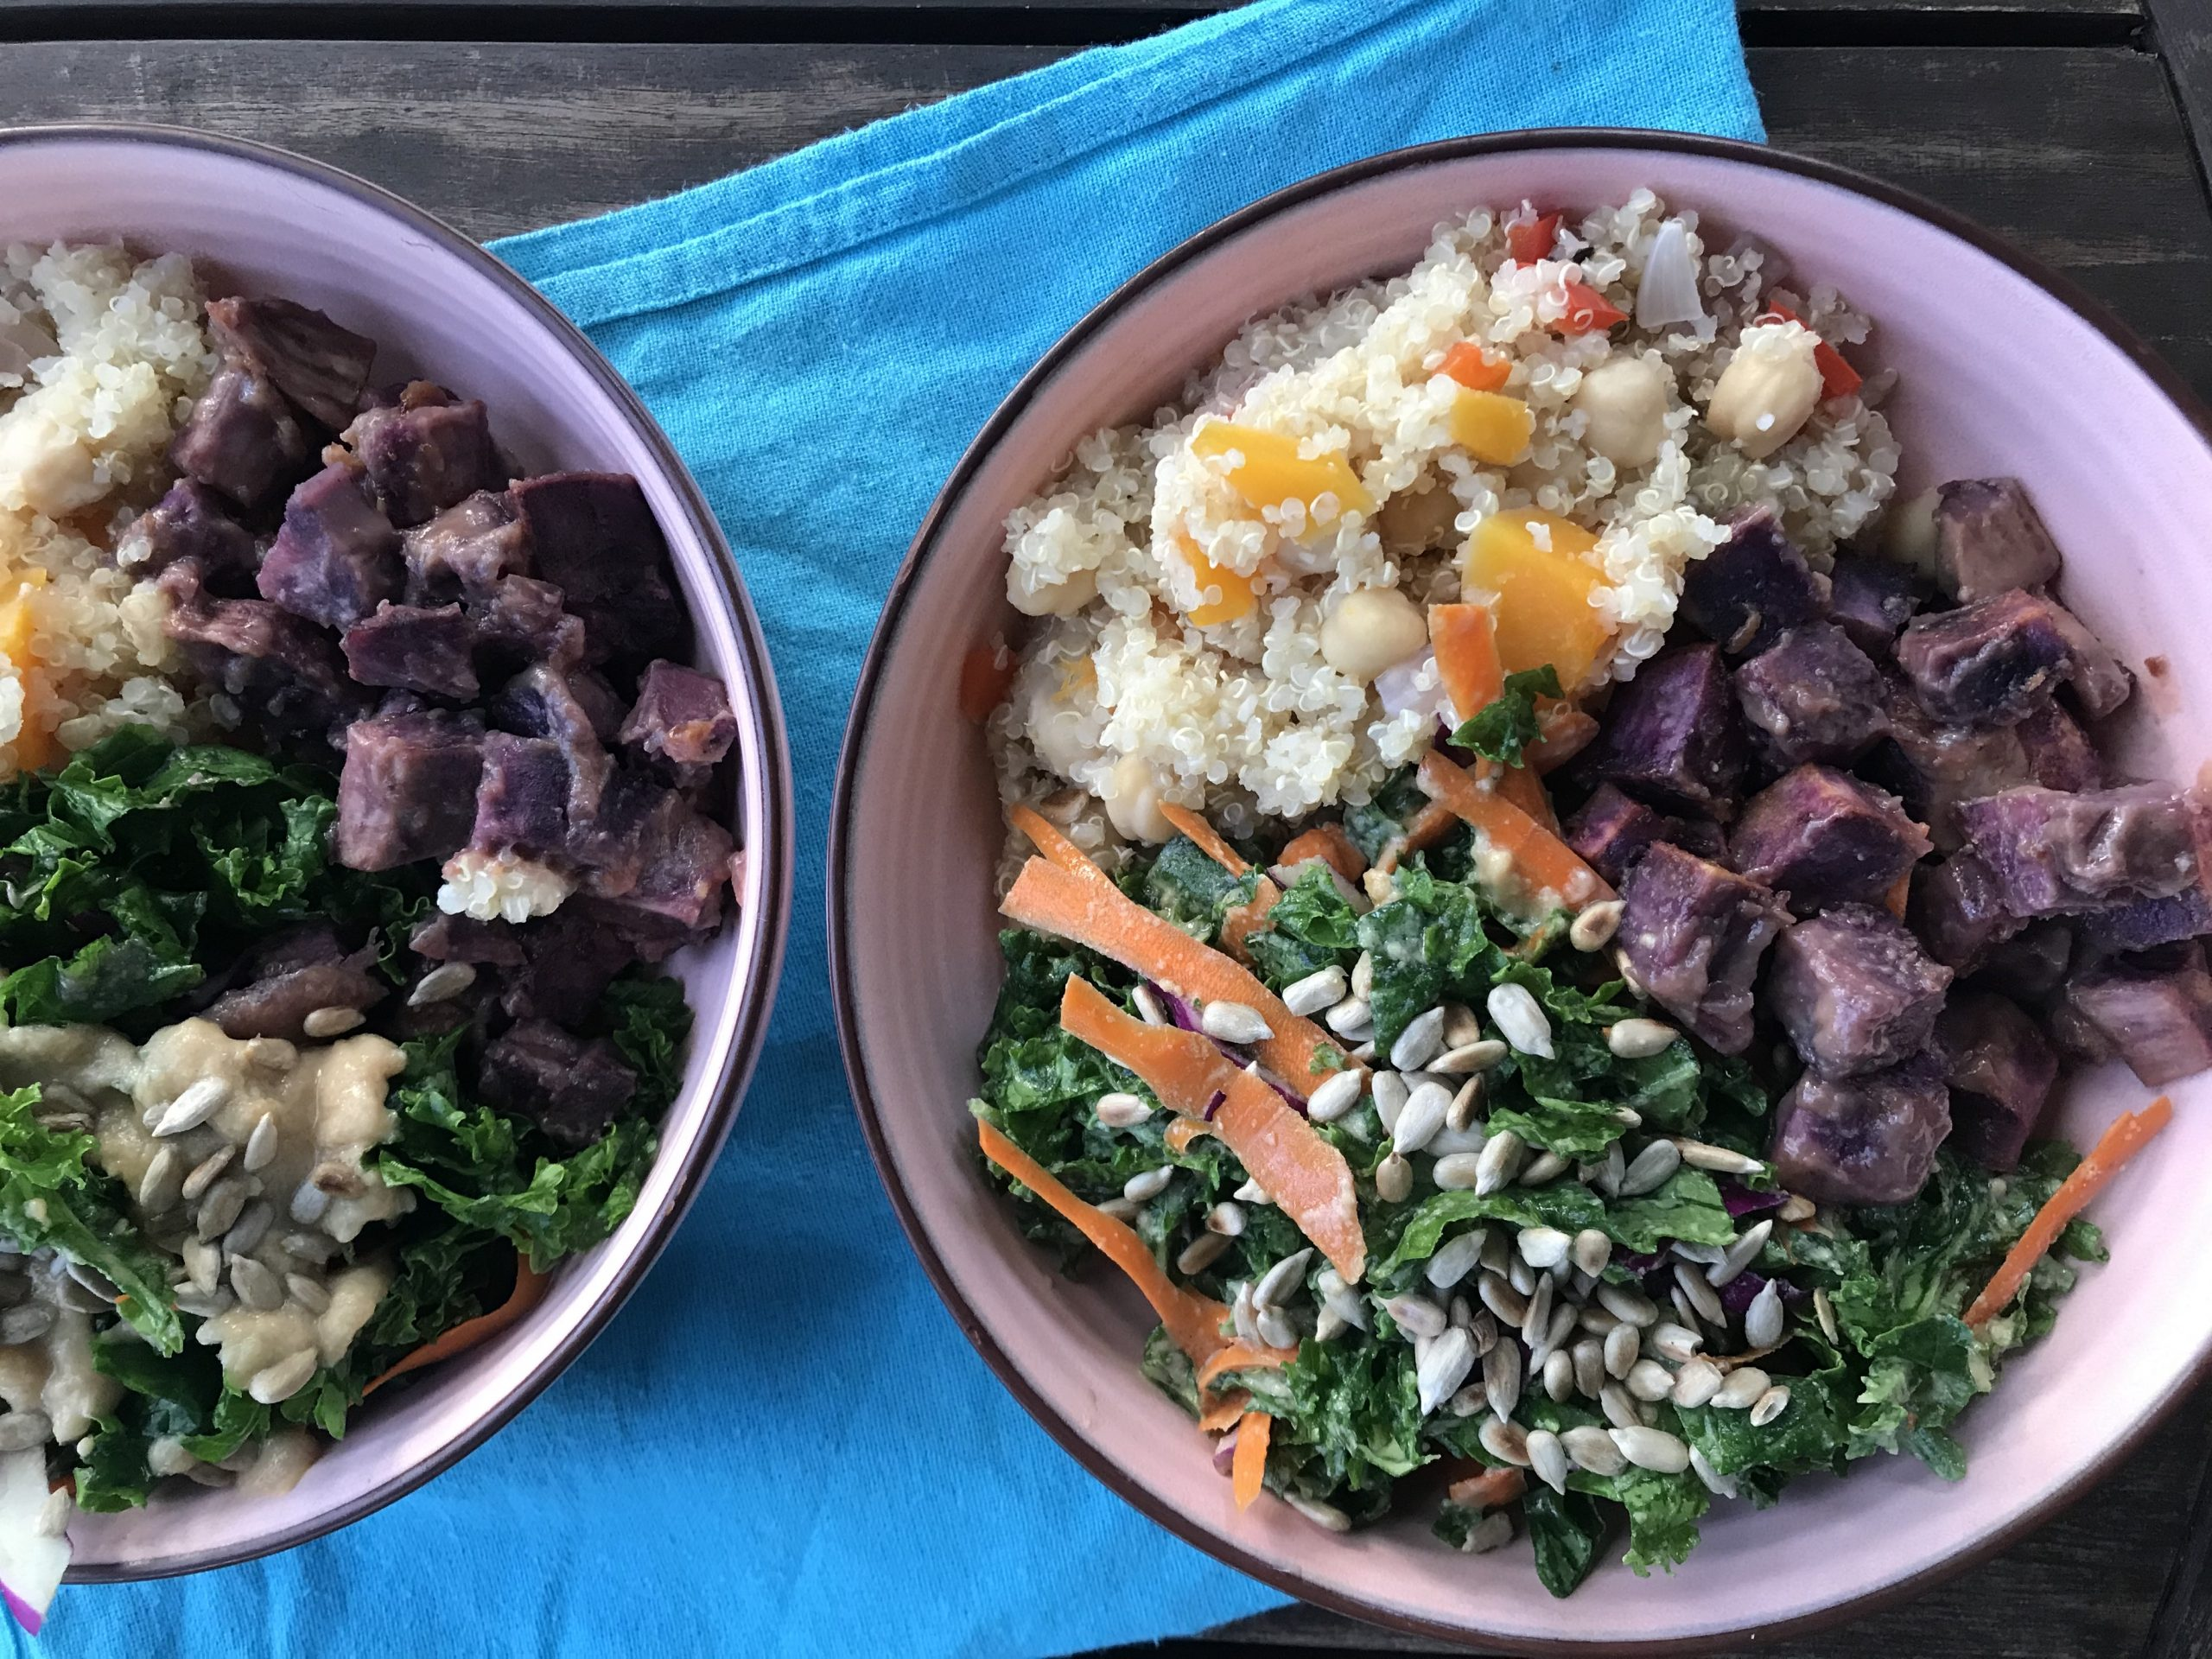 Eat the rainbow: miso glazed sweet potatoes, quinoa pilaf with chickpeas, red pepper, and butternut, and kale salad with carrot and sunflower seeds + tahini dressing.